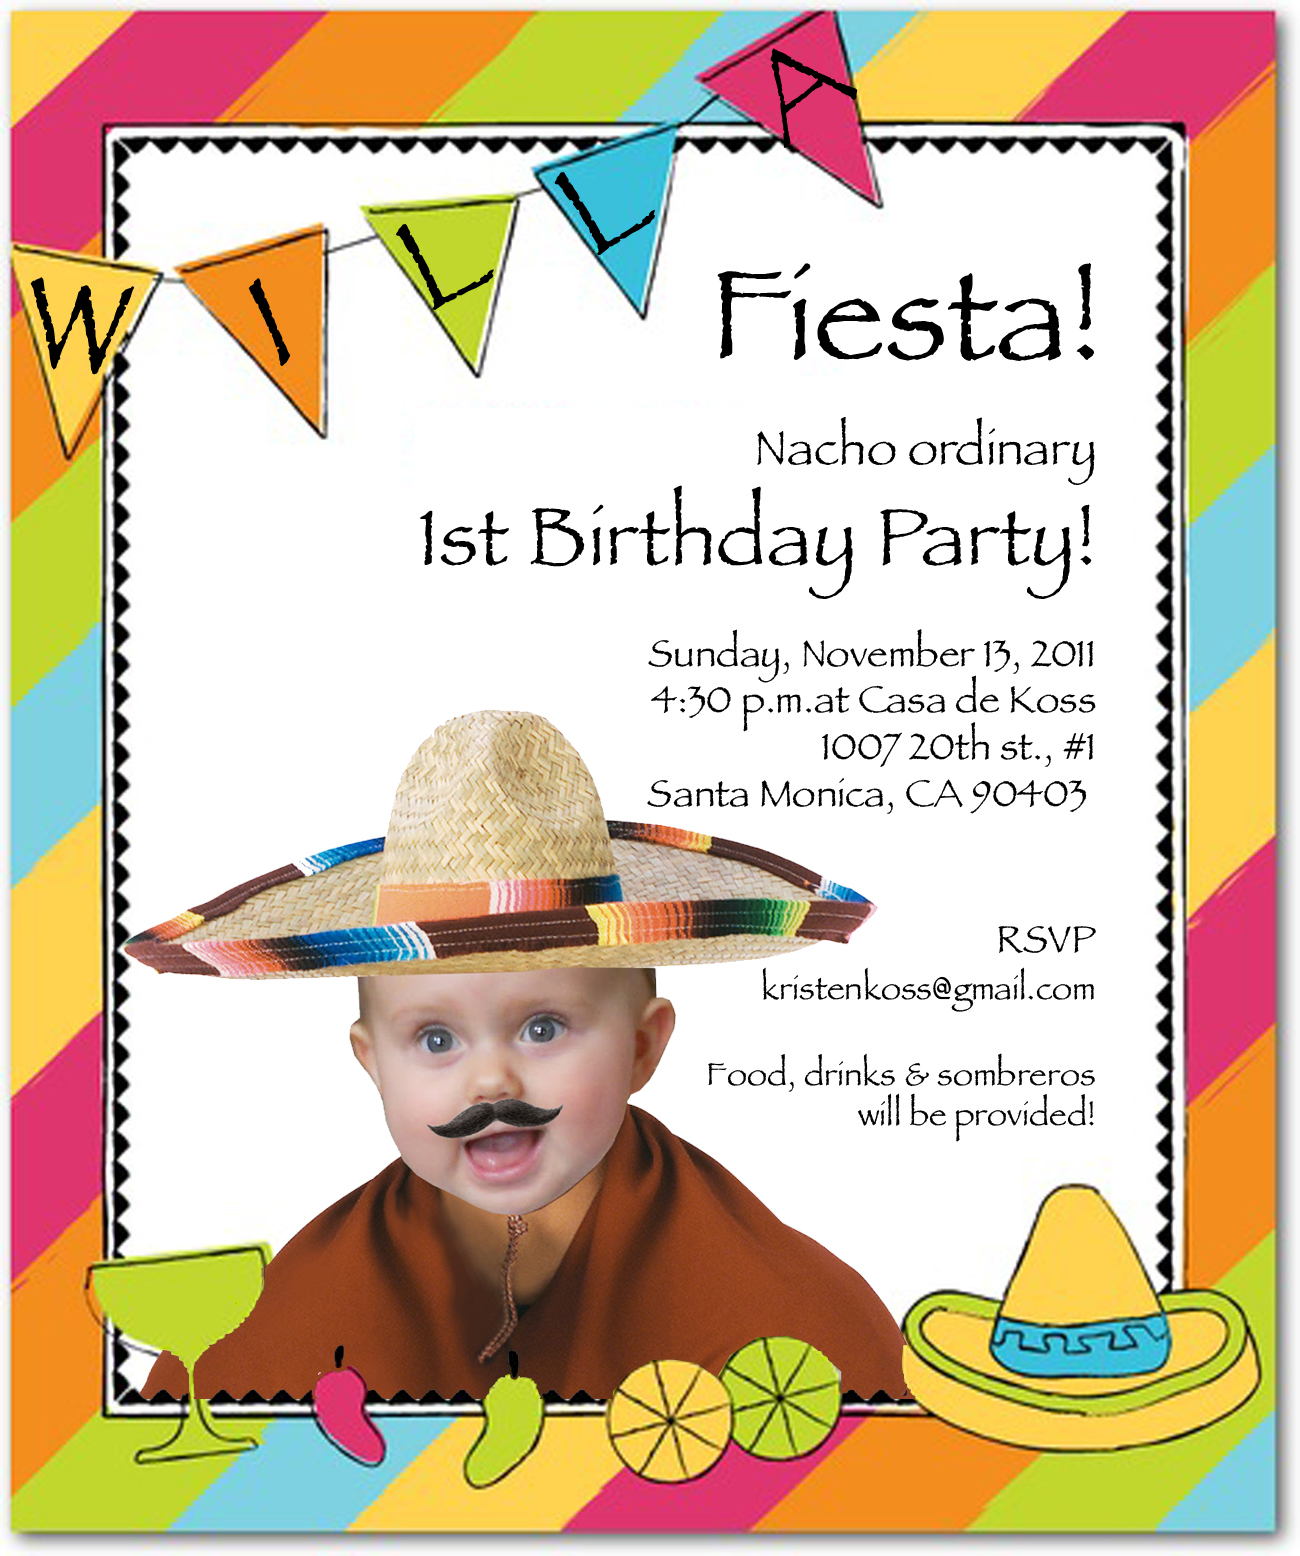 1St Birthday Party Invite was good invitation example